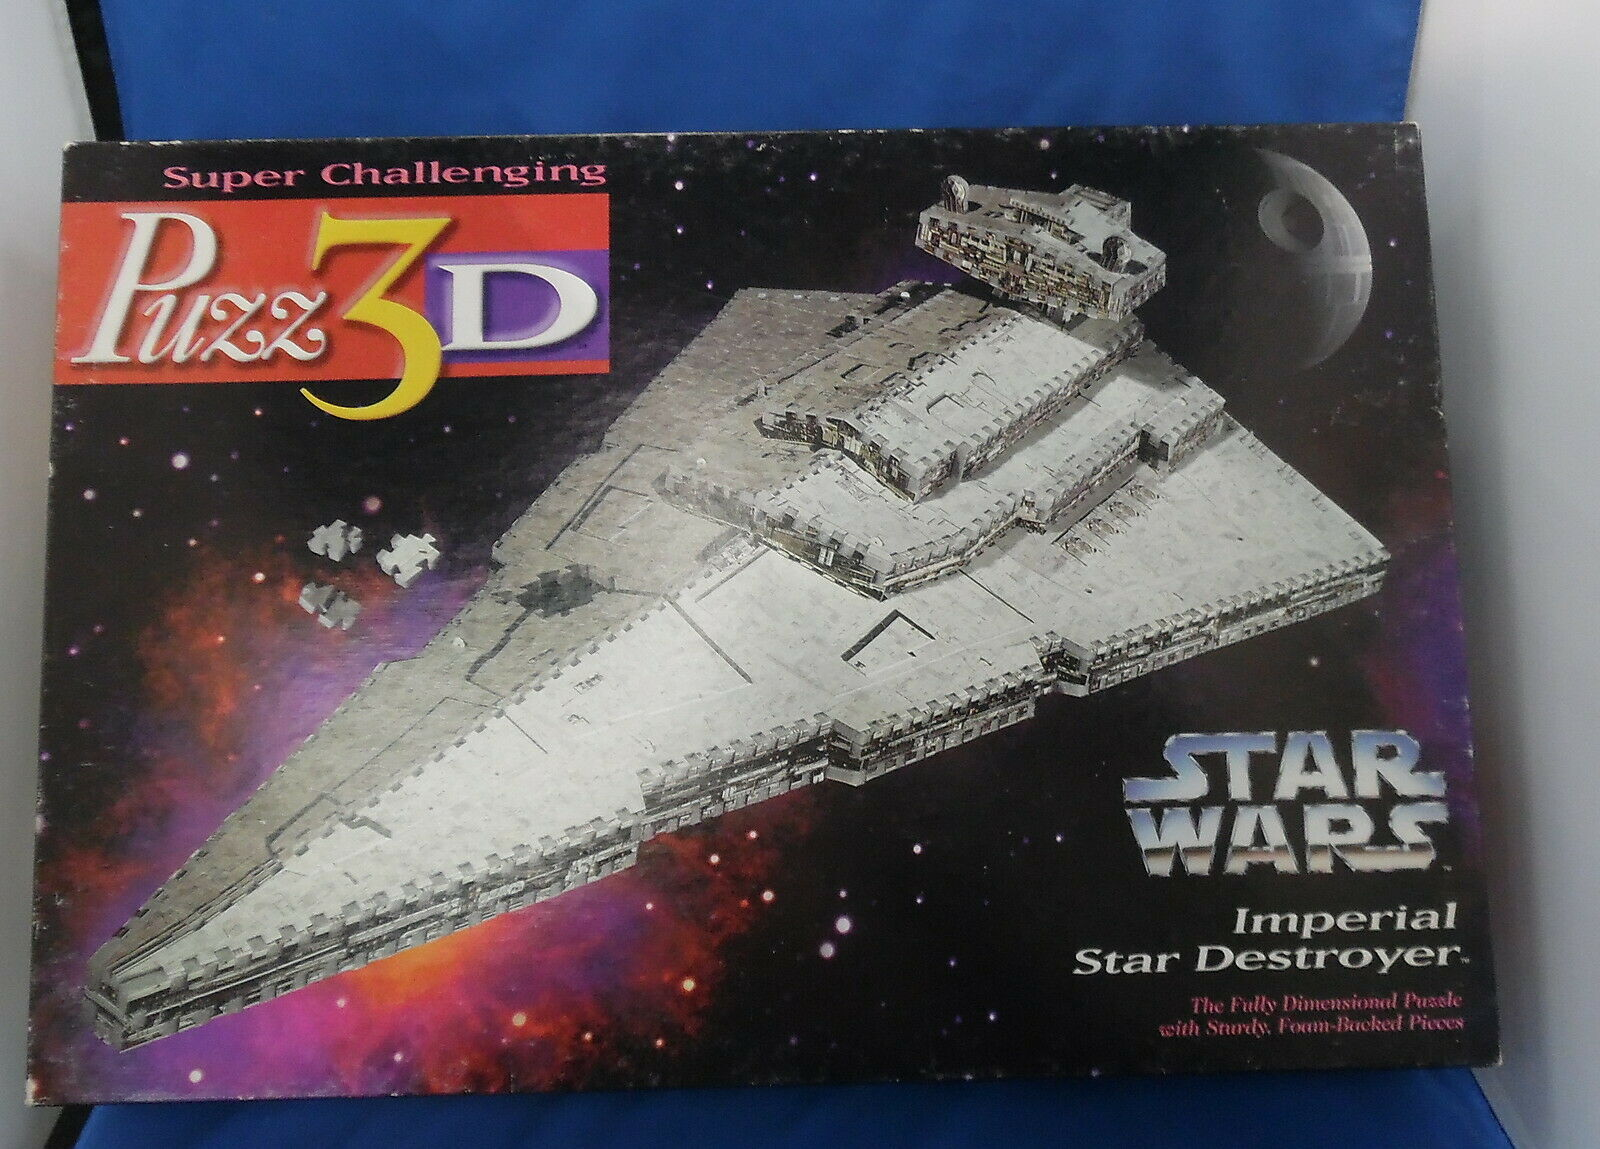 Star Wars Puzz3D Imperial Star Destoryer 3D Puzzle Complete 823 Pieces 1996